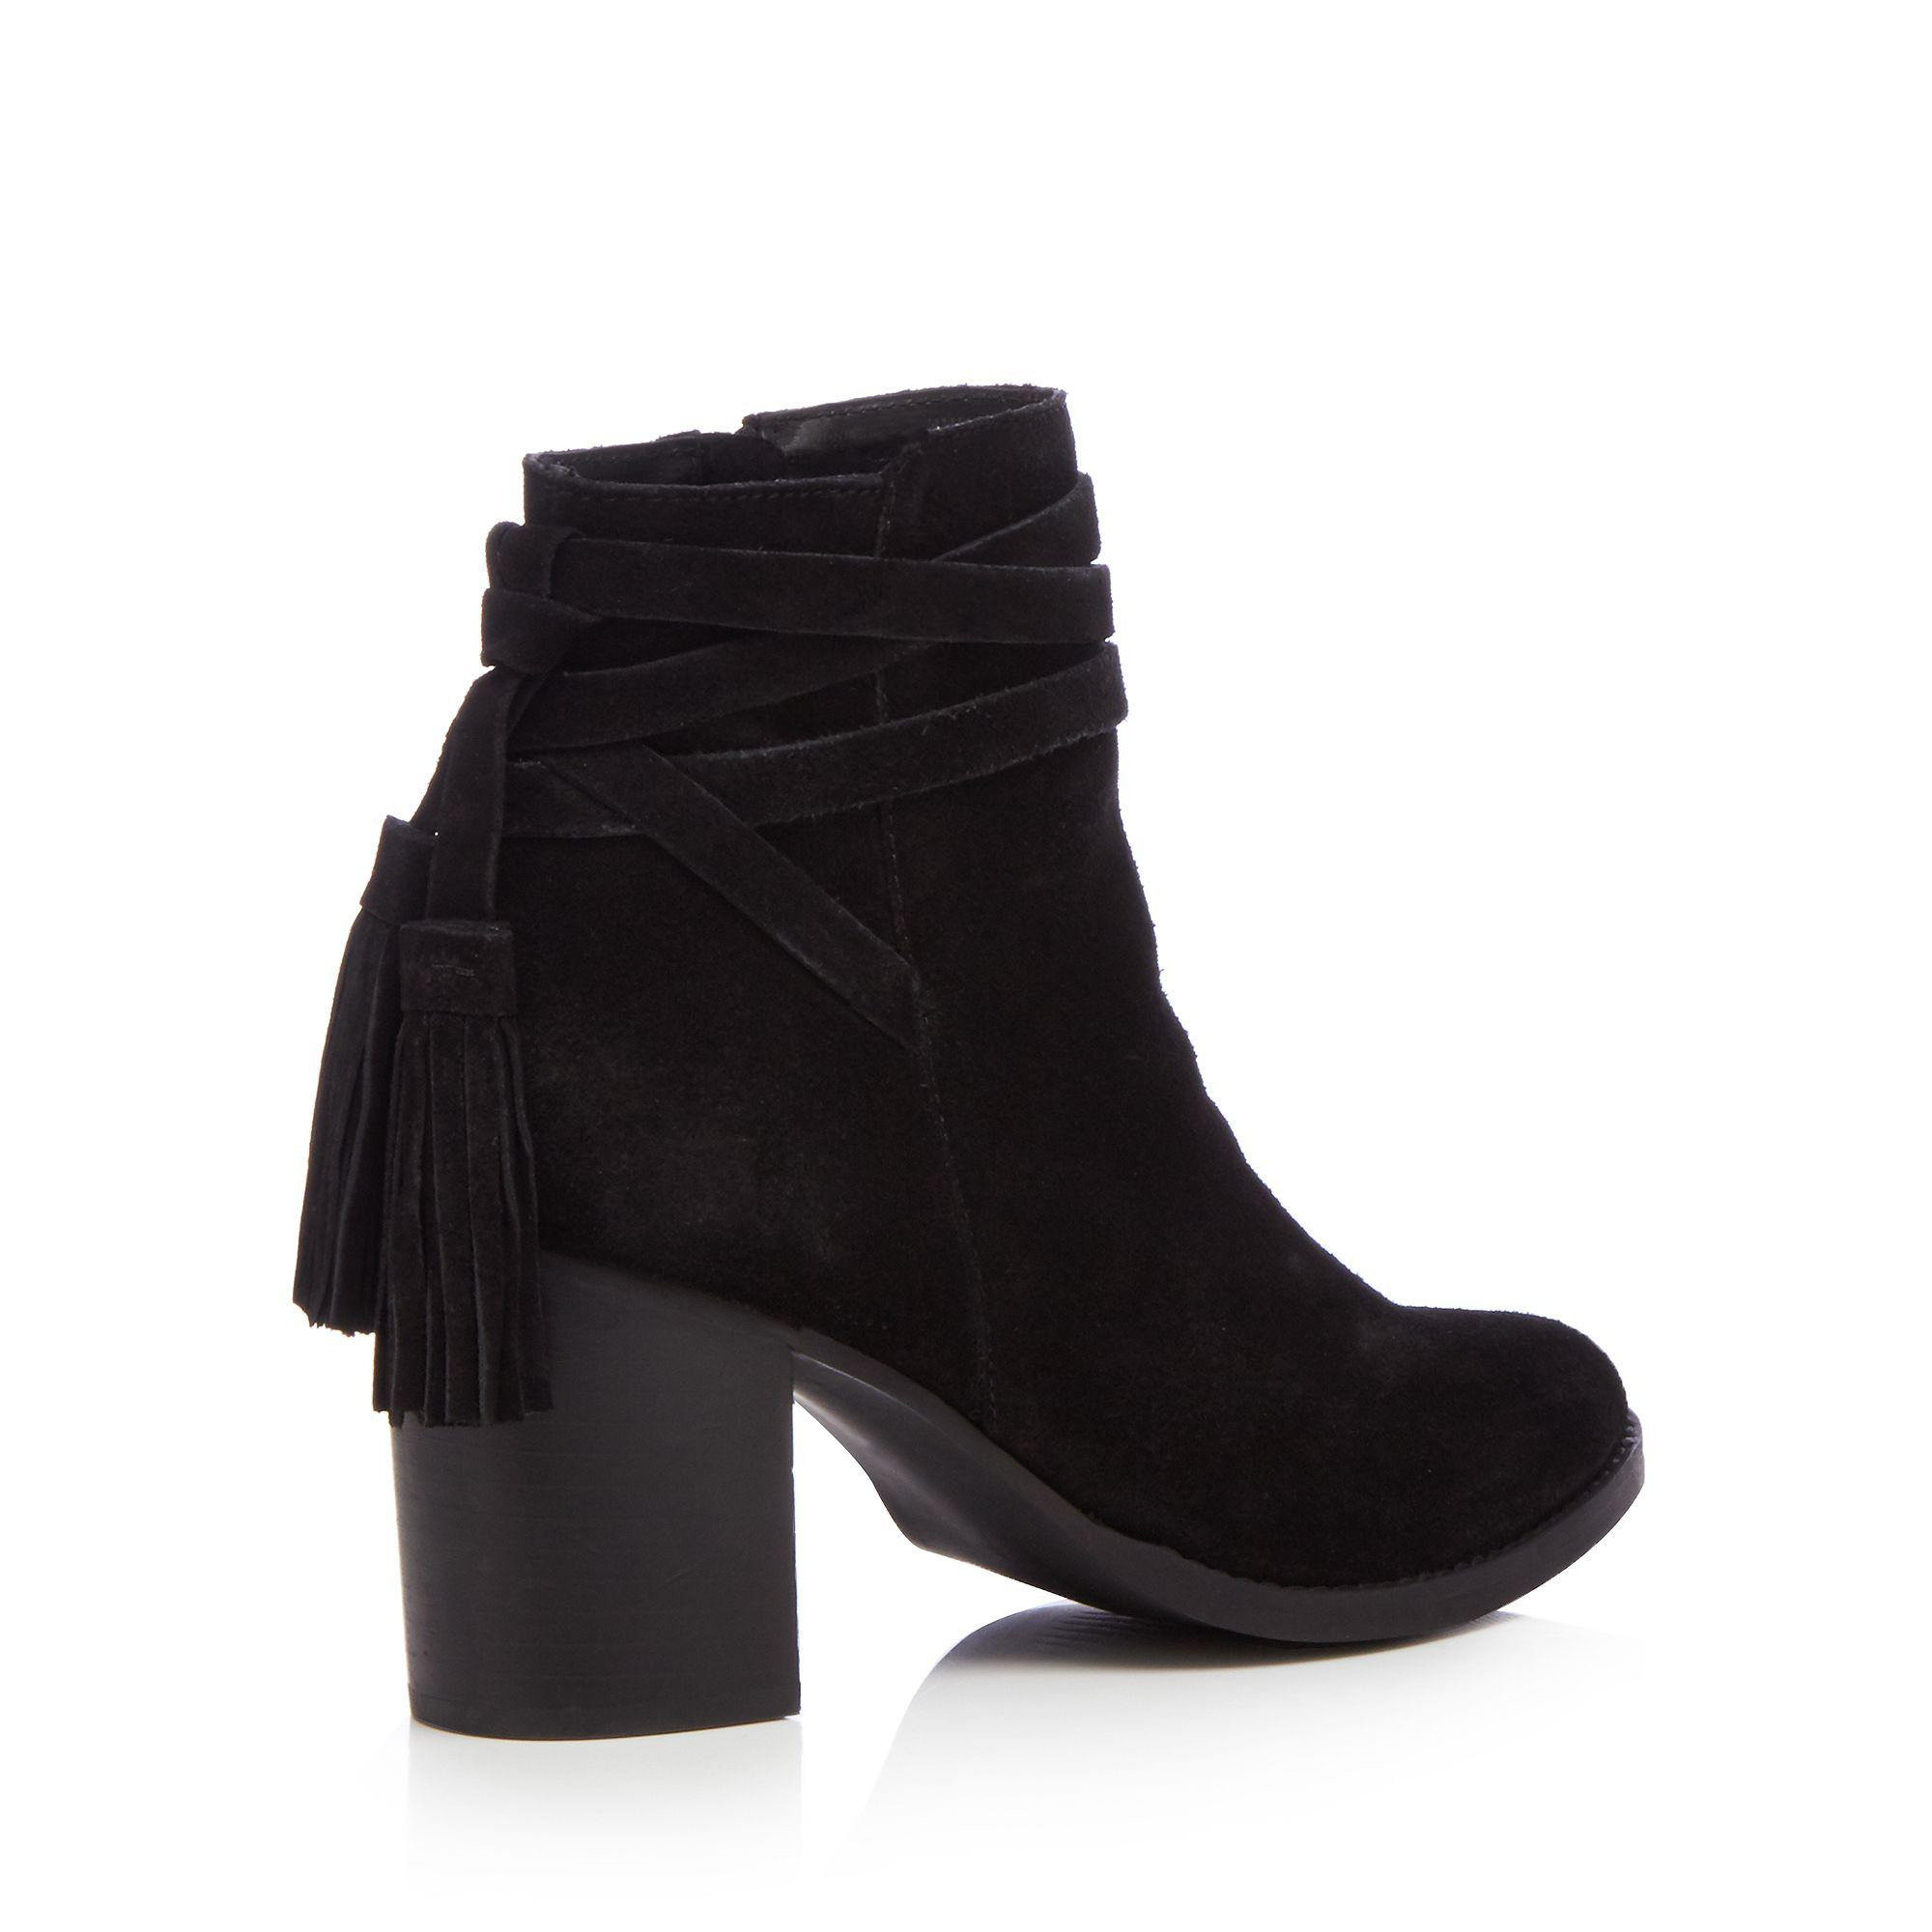 High Block Heel Ankle Boots - Lyst